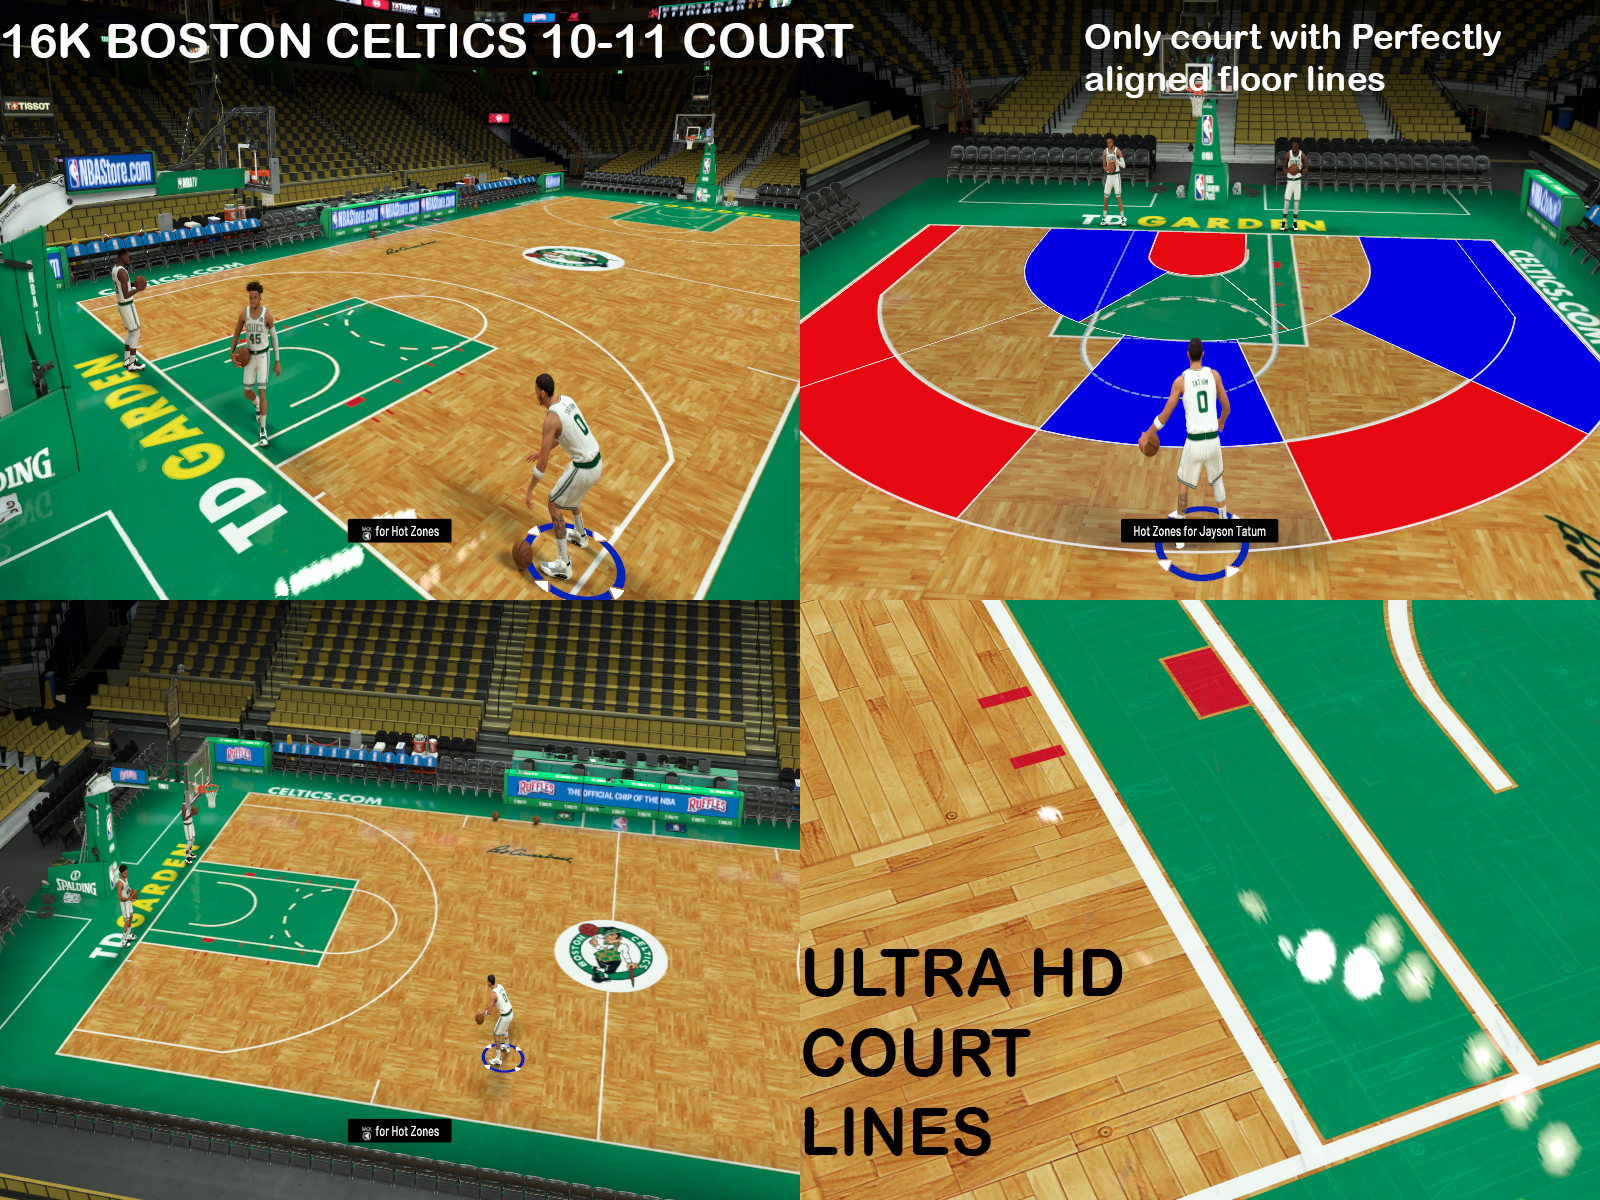 Boston Celtics 2010-11 Court 16K by Lethanos